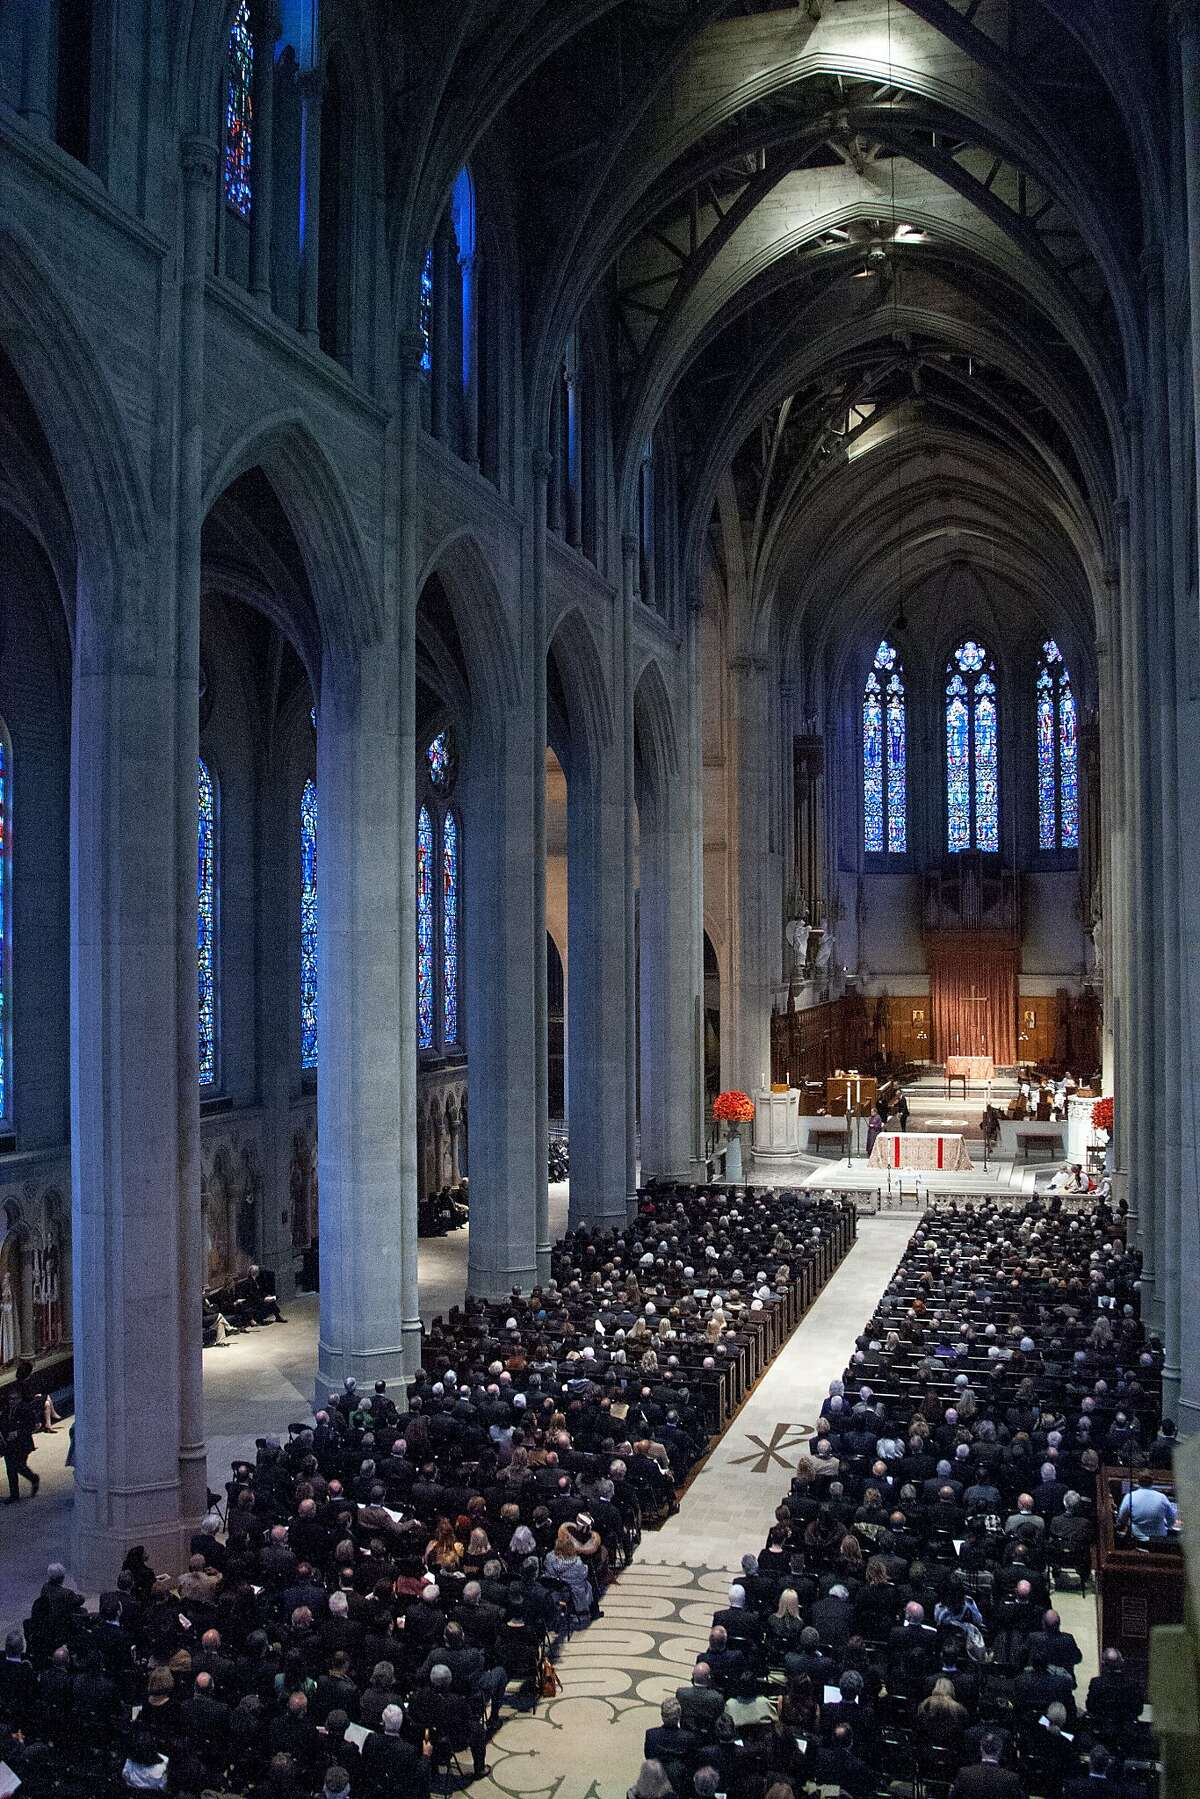 A few hundred people are inside Grace Cathedral for Wilkes Bashford's memorial service, Friday, Jan. 29, 2016, in San Francisco, Calif. Bashford was a luxury clothier and philanthropist.